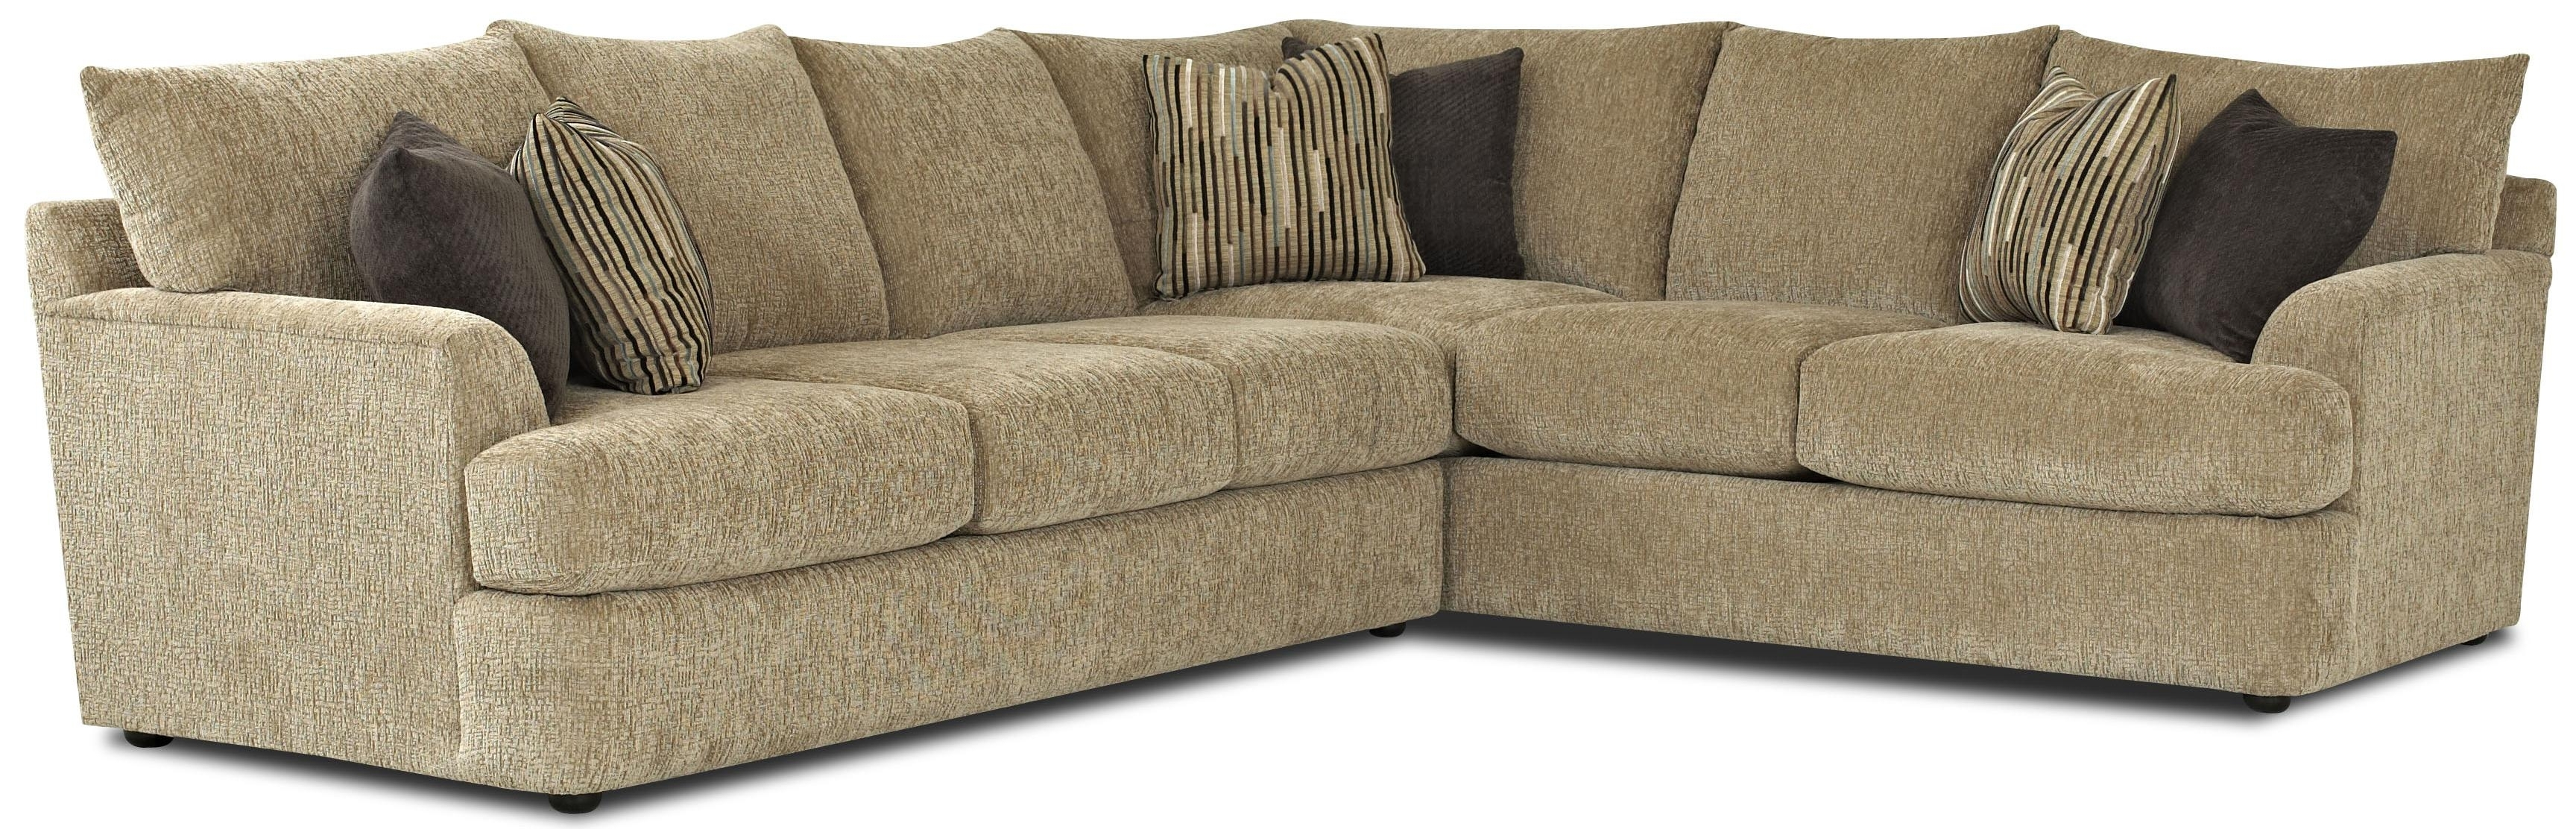 L Shaped Sectional Sofas With Regard To Widely Used Contemporary L Shaped Sectional Sofaklaussner (View 6 of 20)